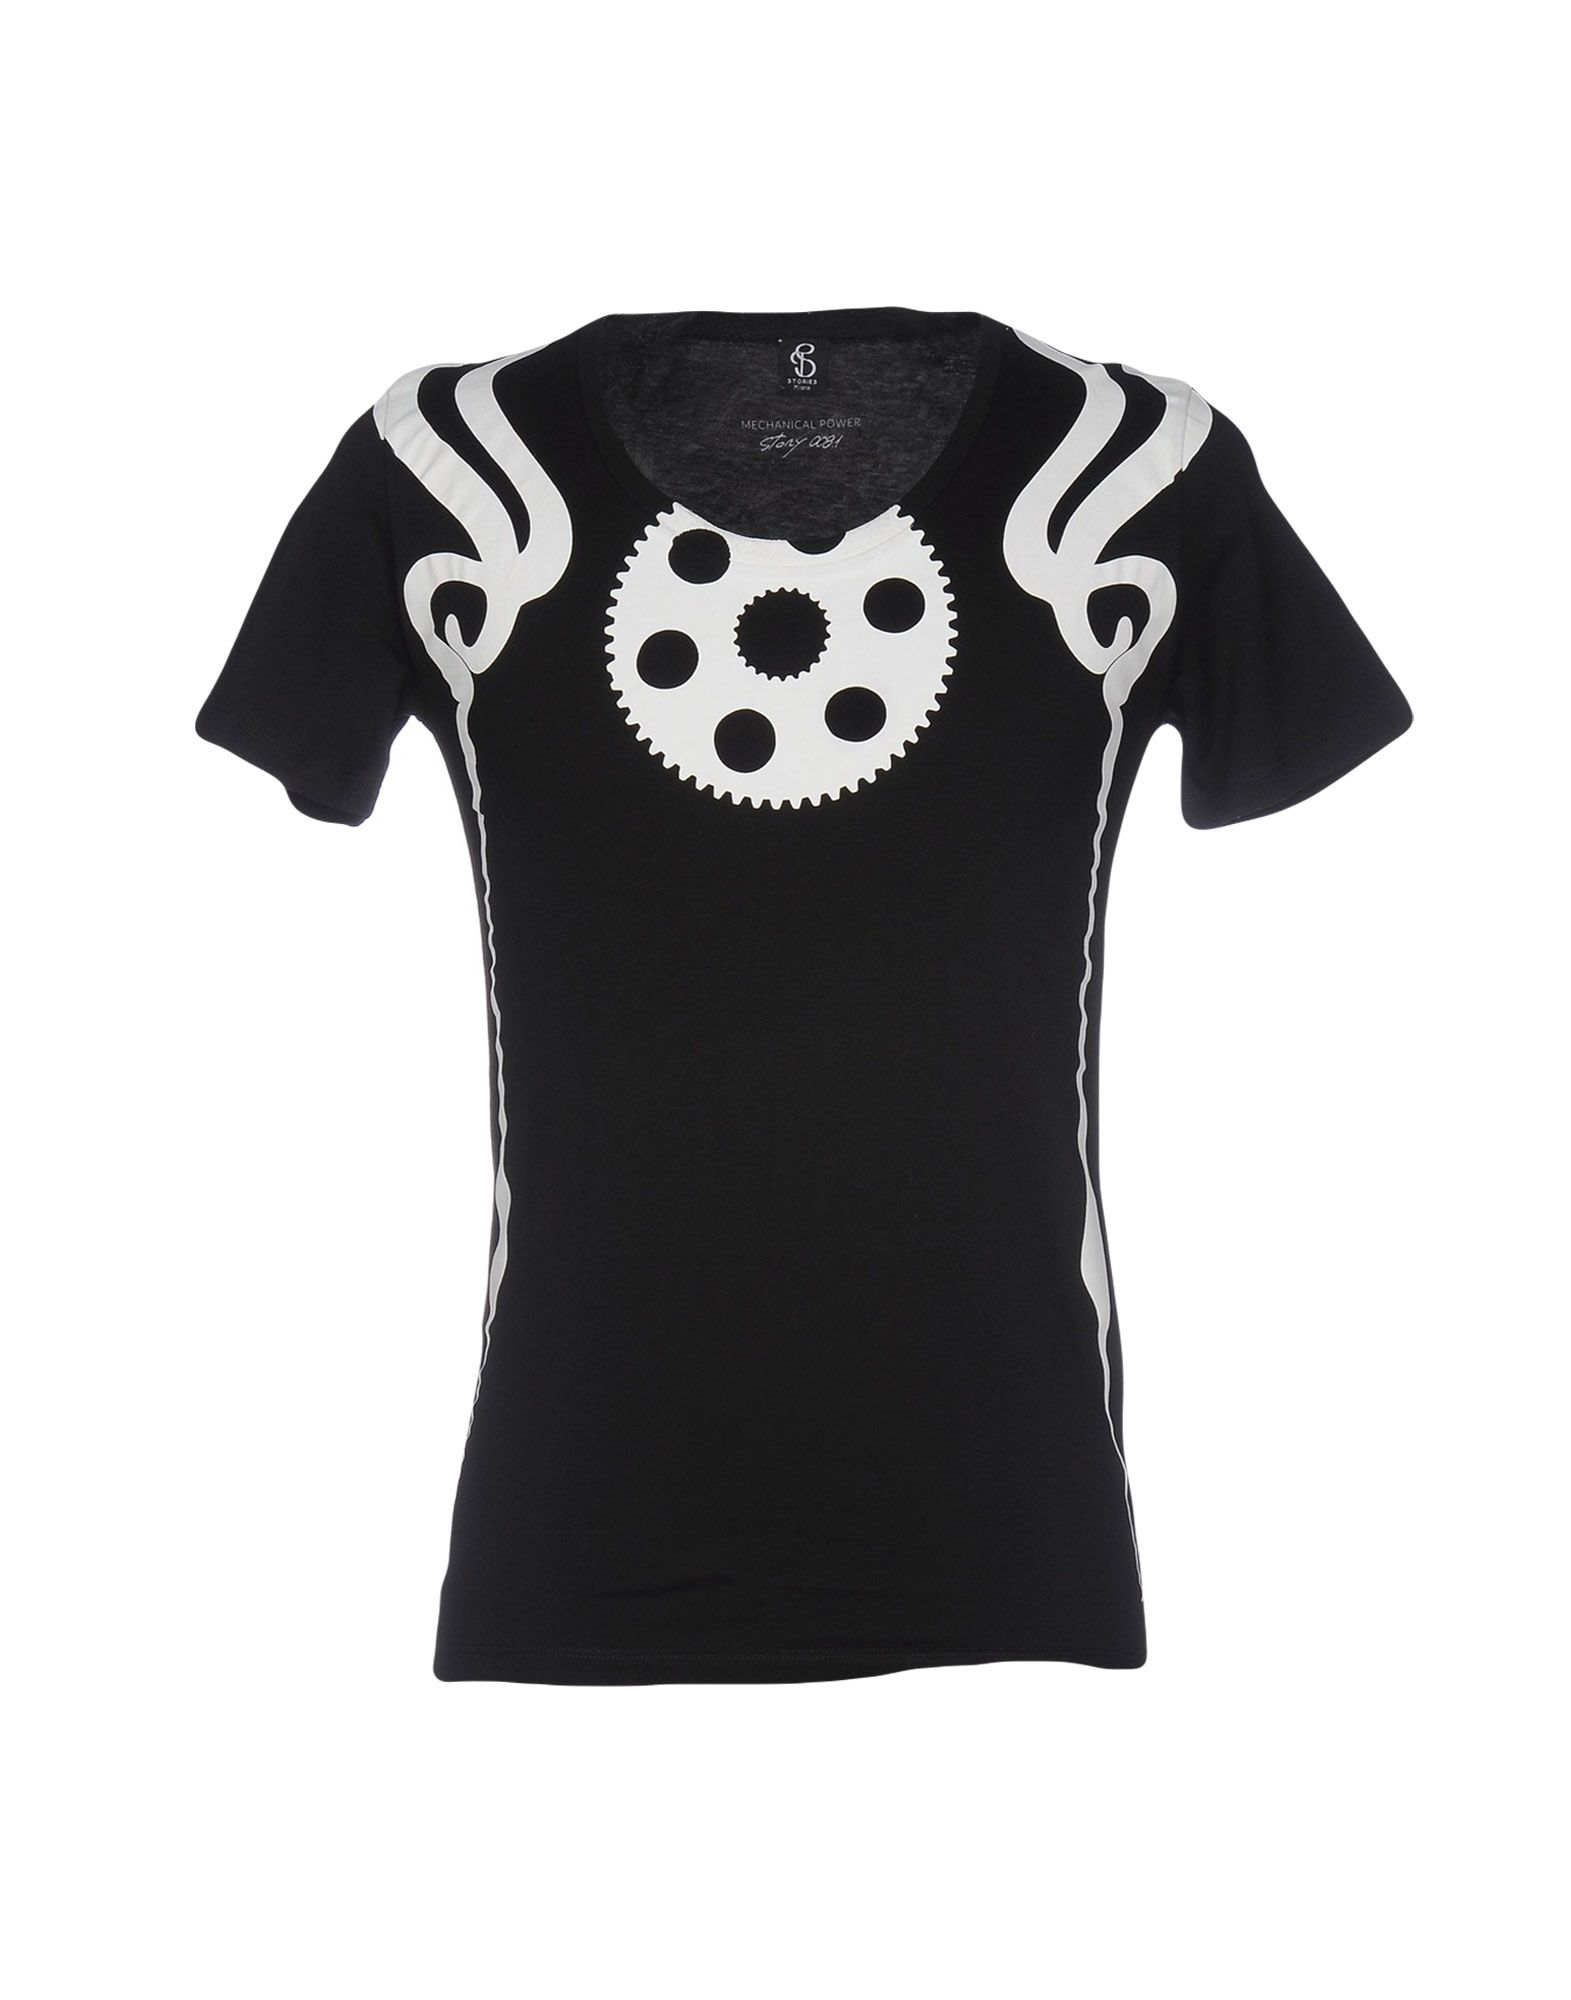 STORIES MILANO T-Shirts in Black